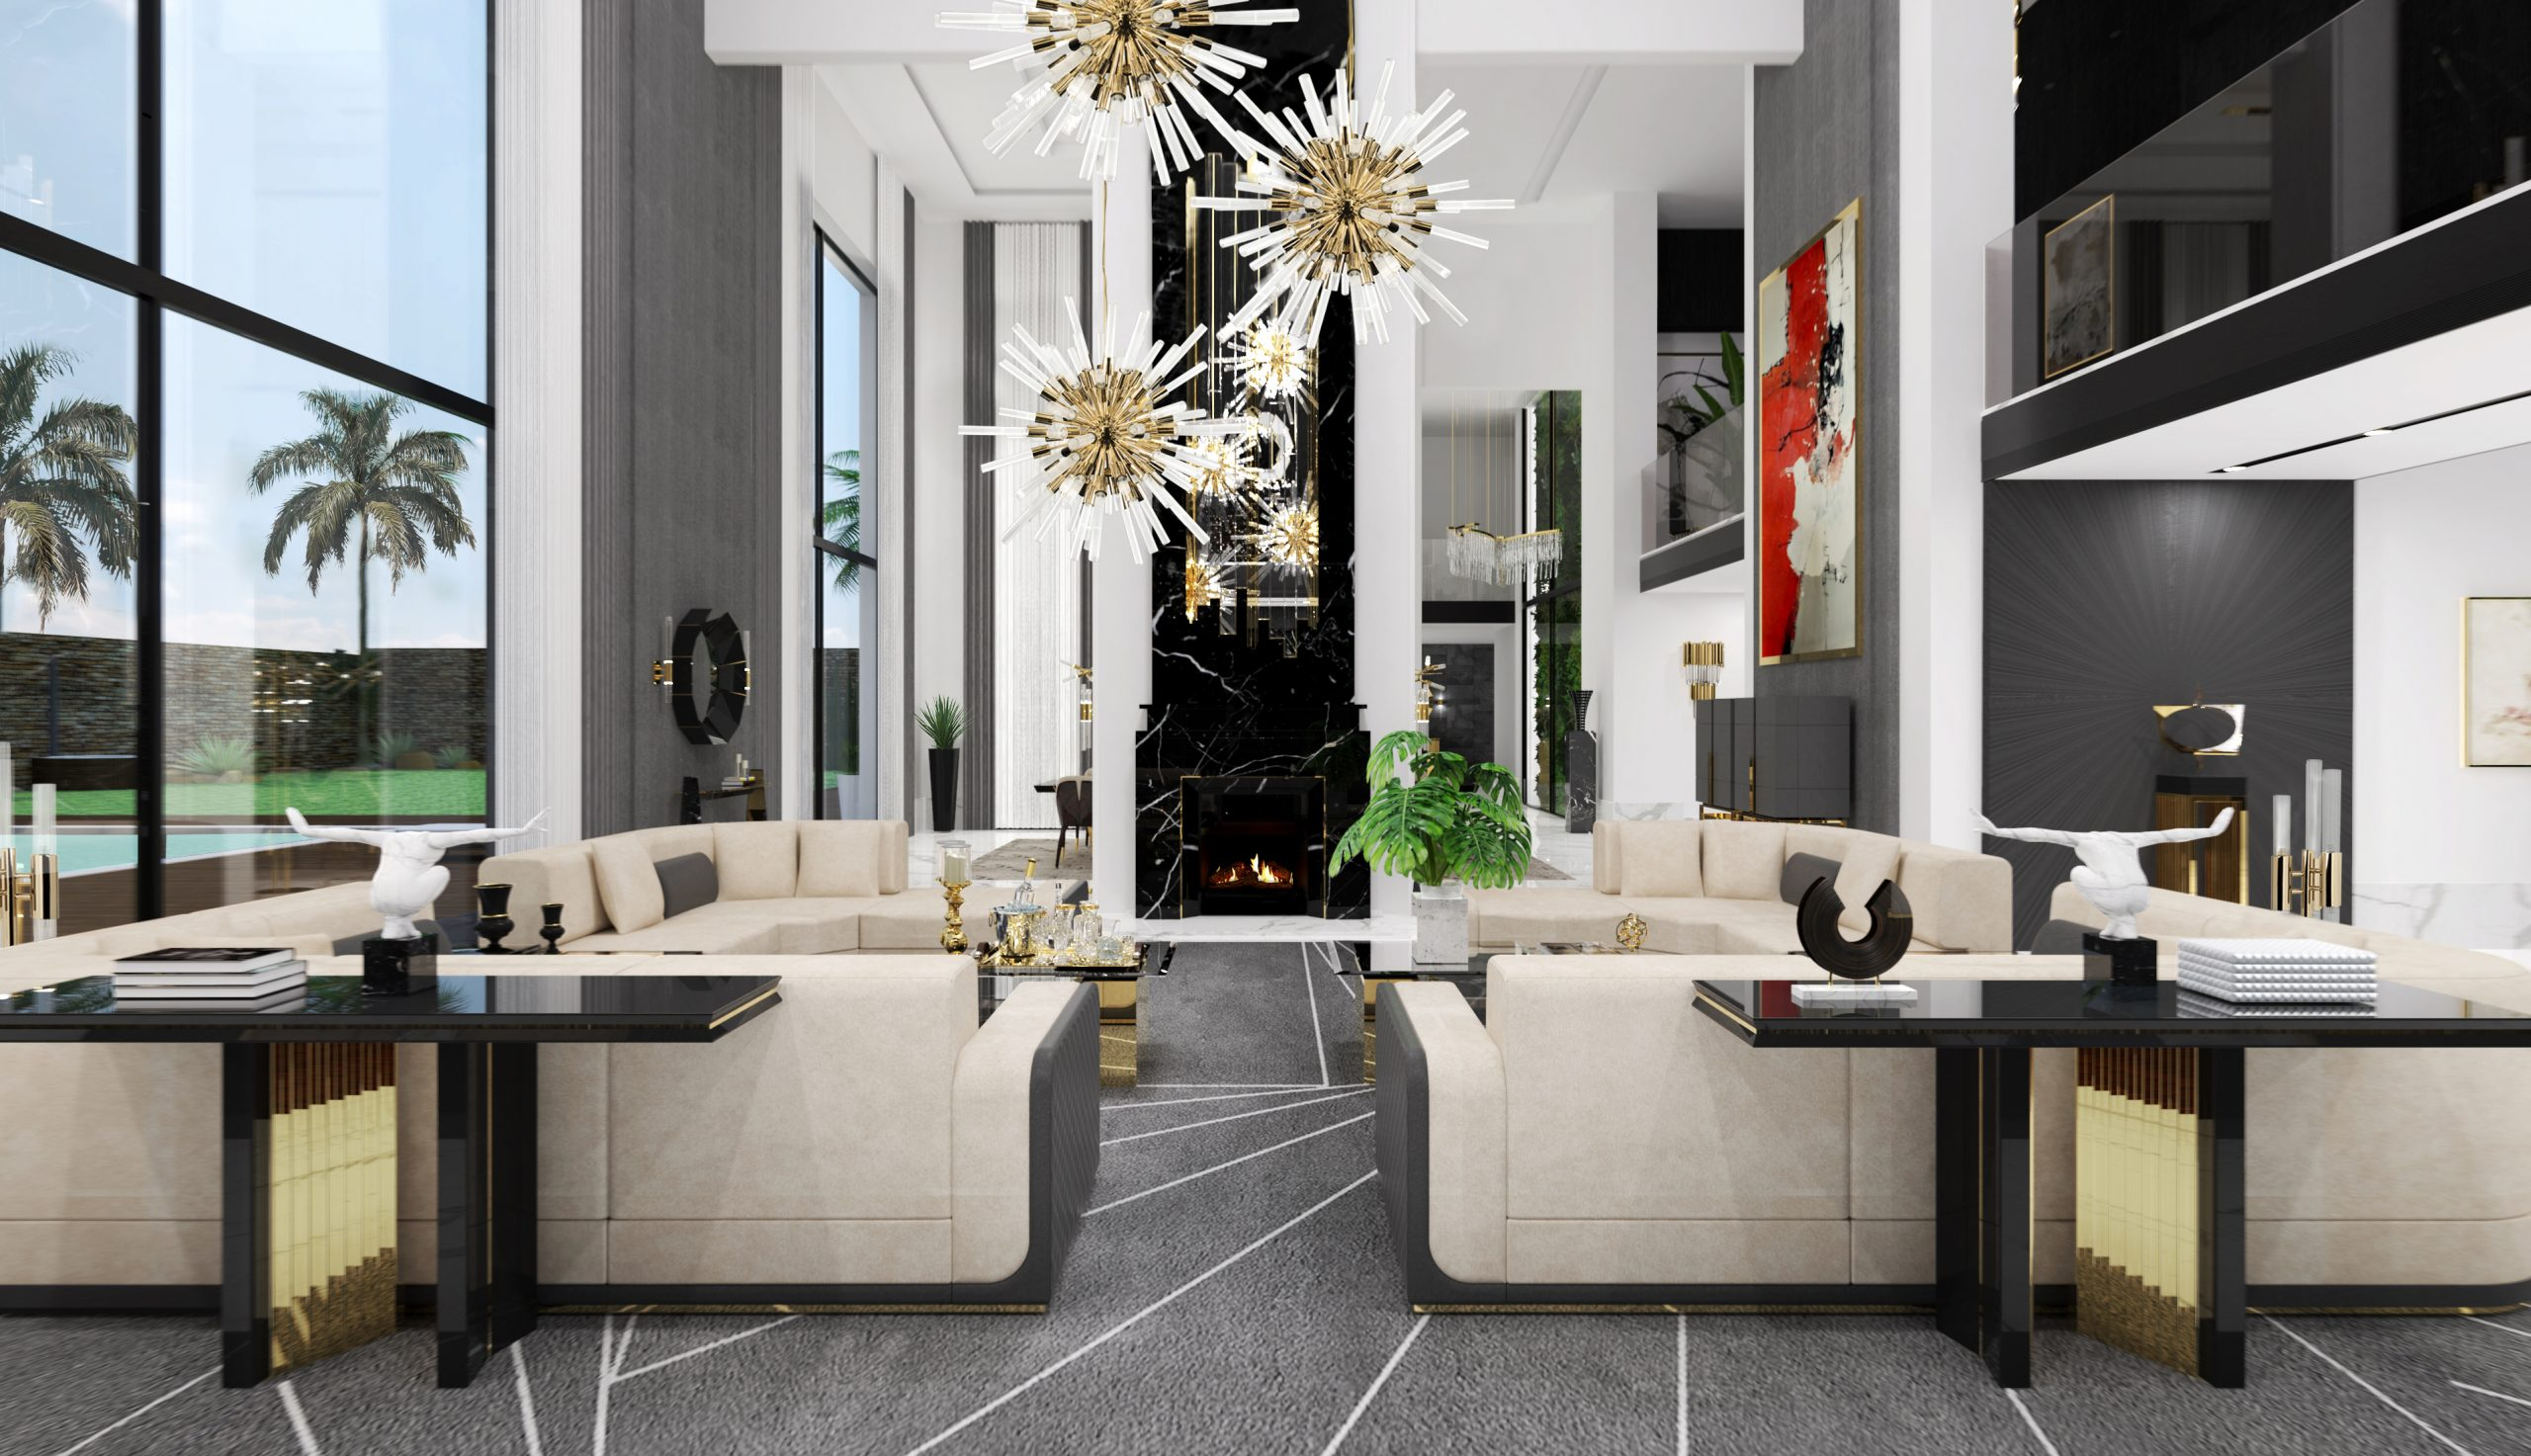 Empowering your Design with Luxury Chandeliers